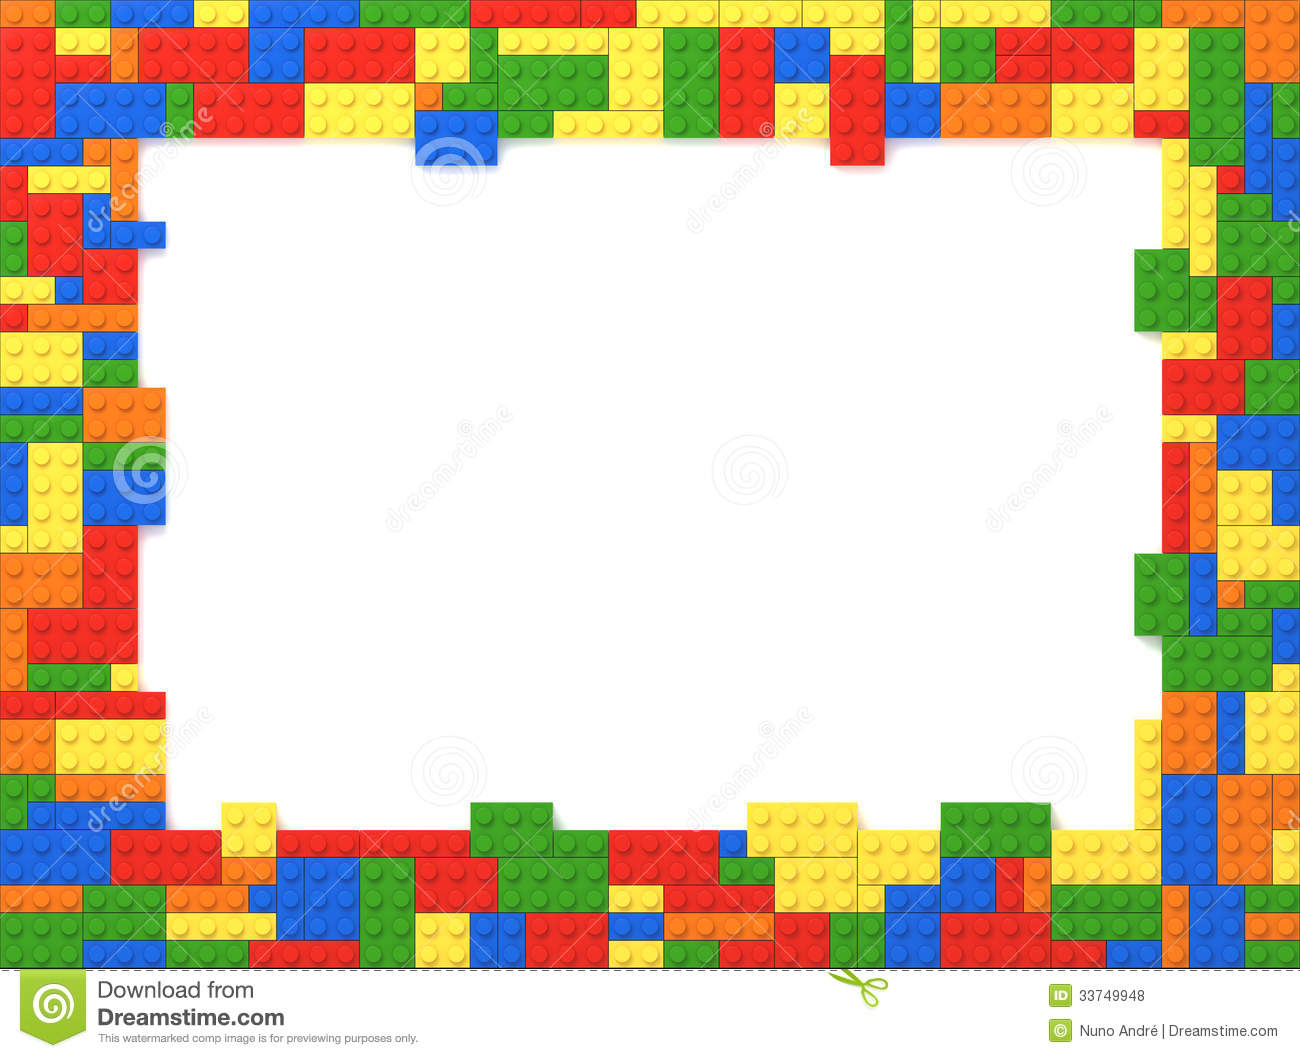 toy bricks picture frame random colors